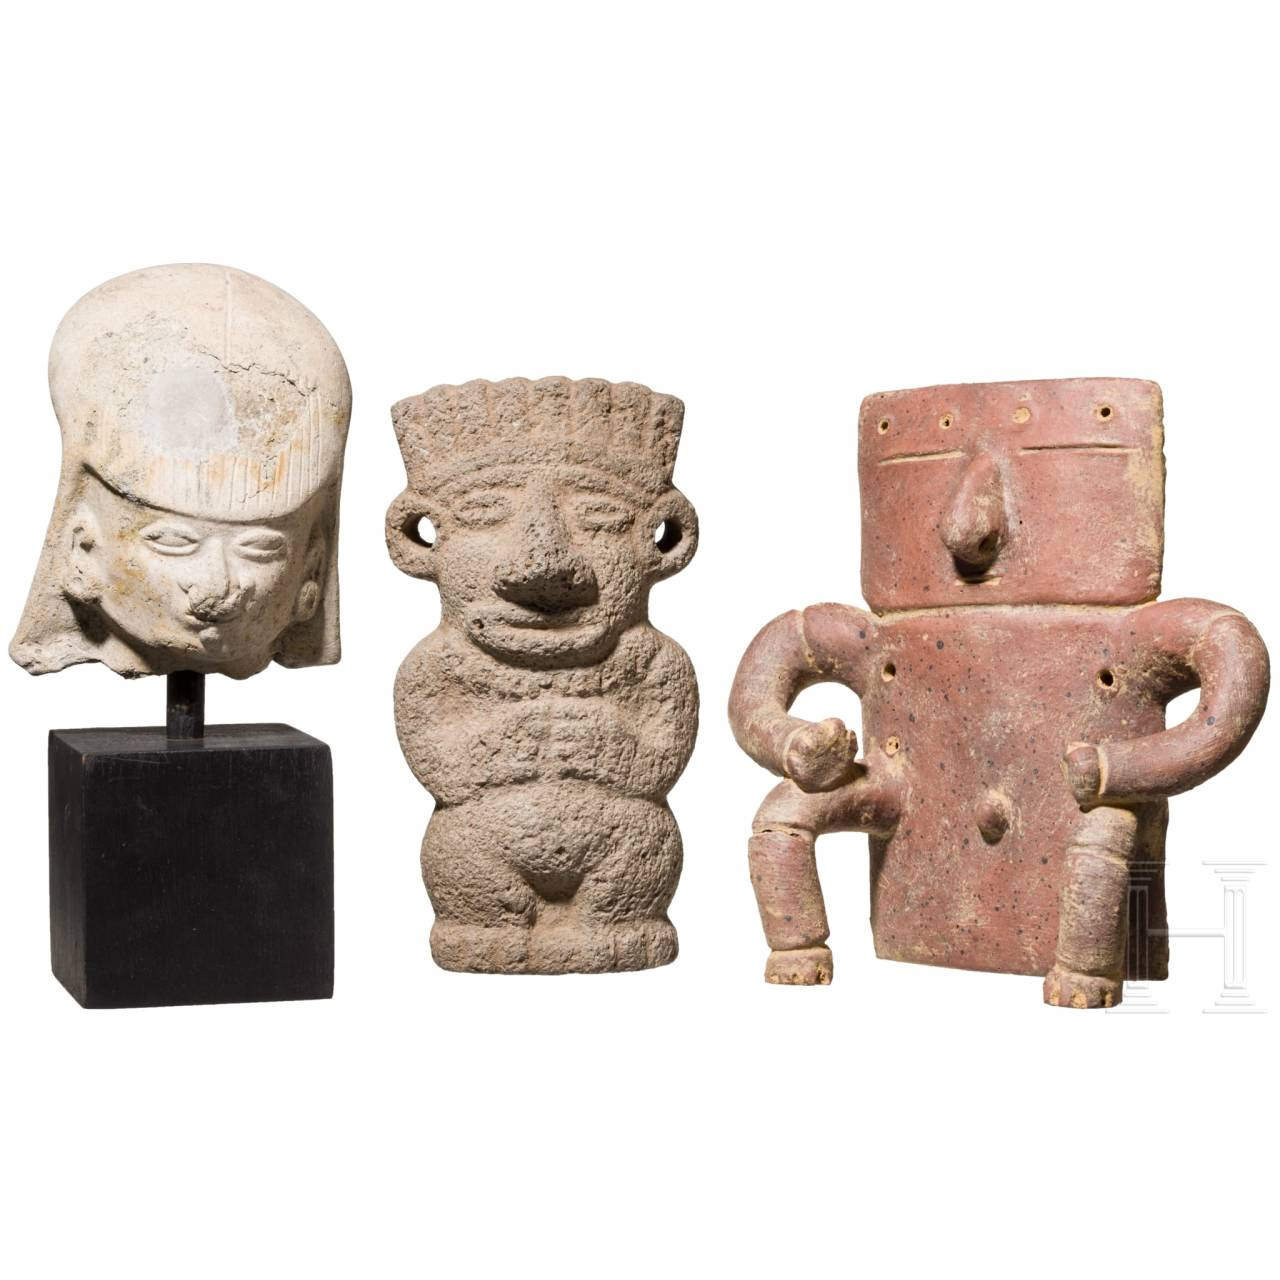 Three Central and South American figurines, circa 100 – 1500